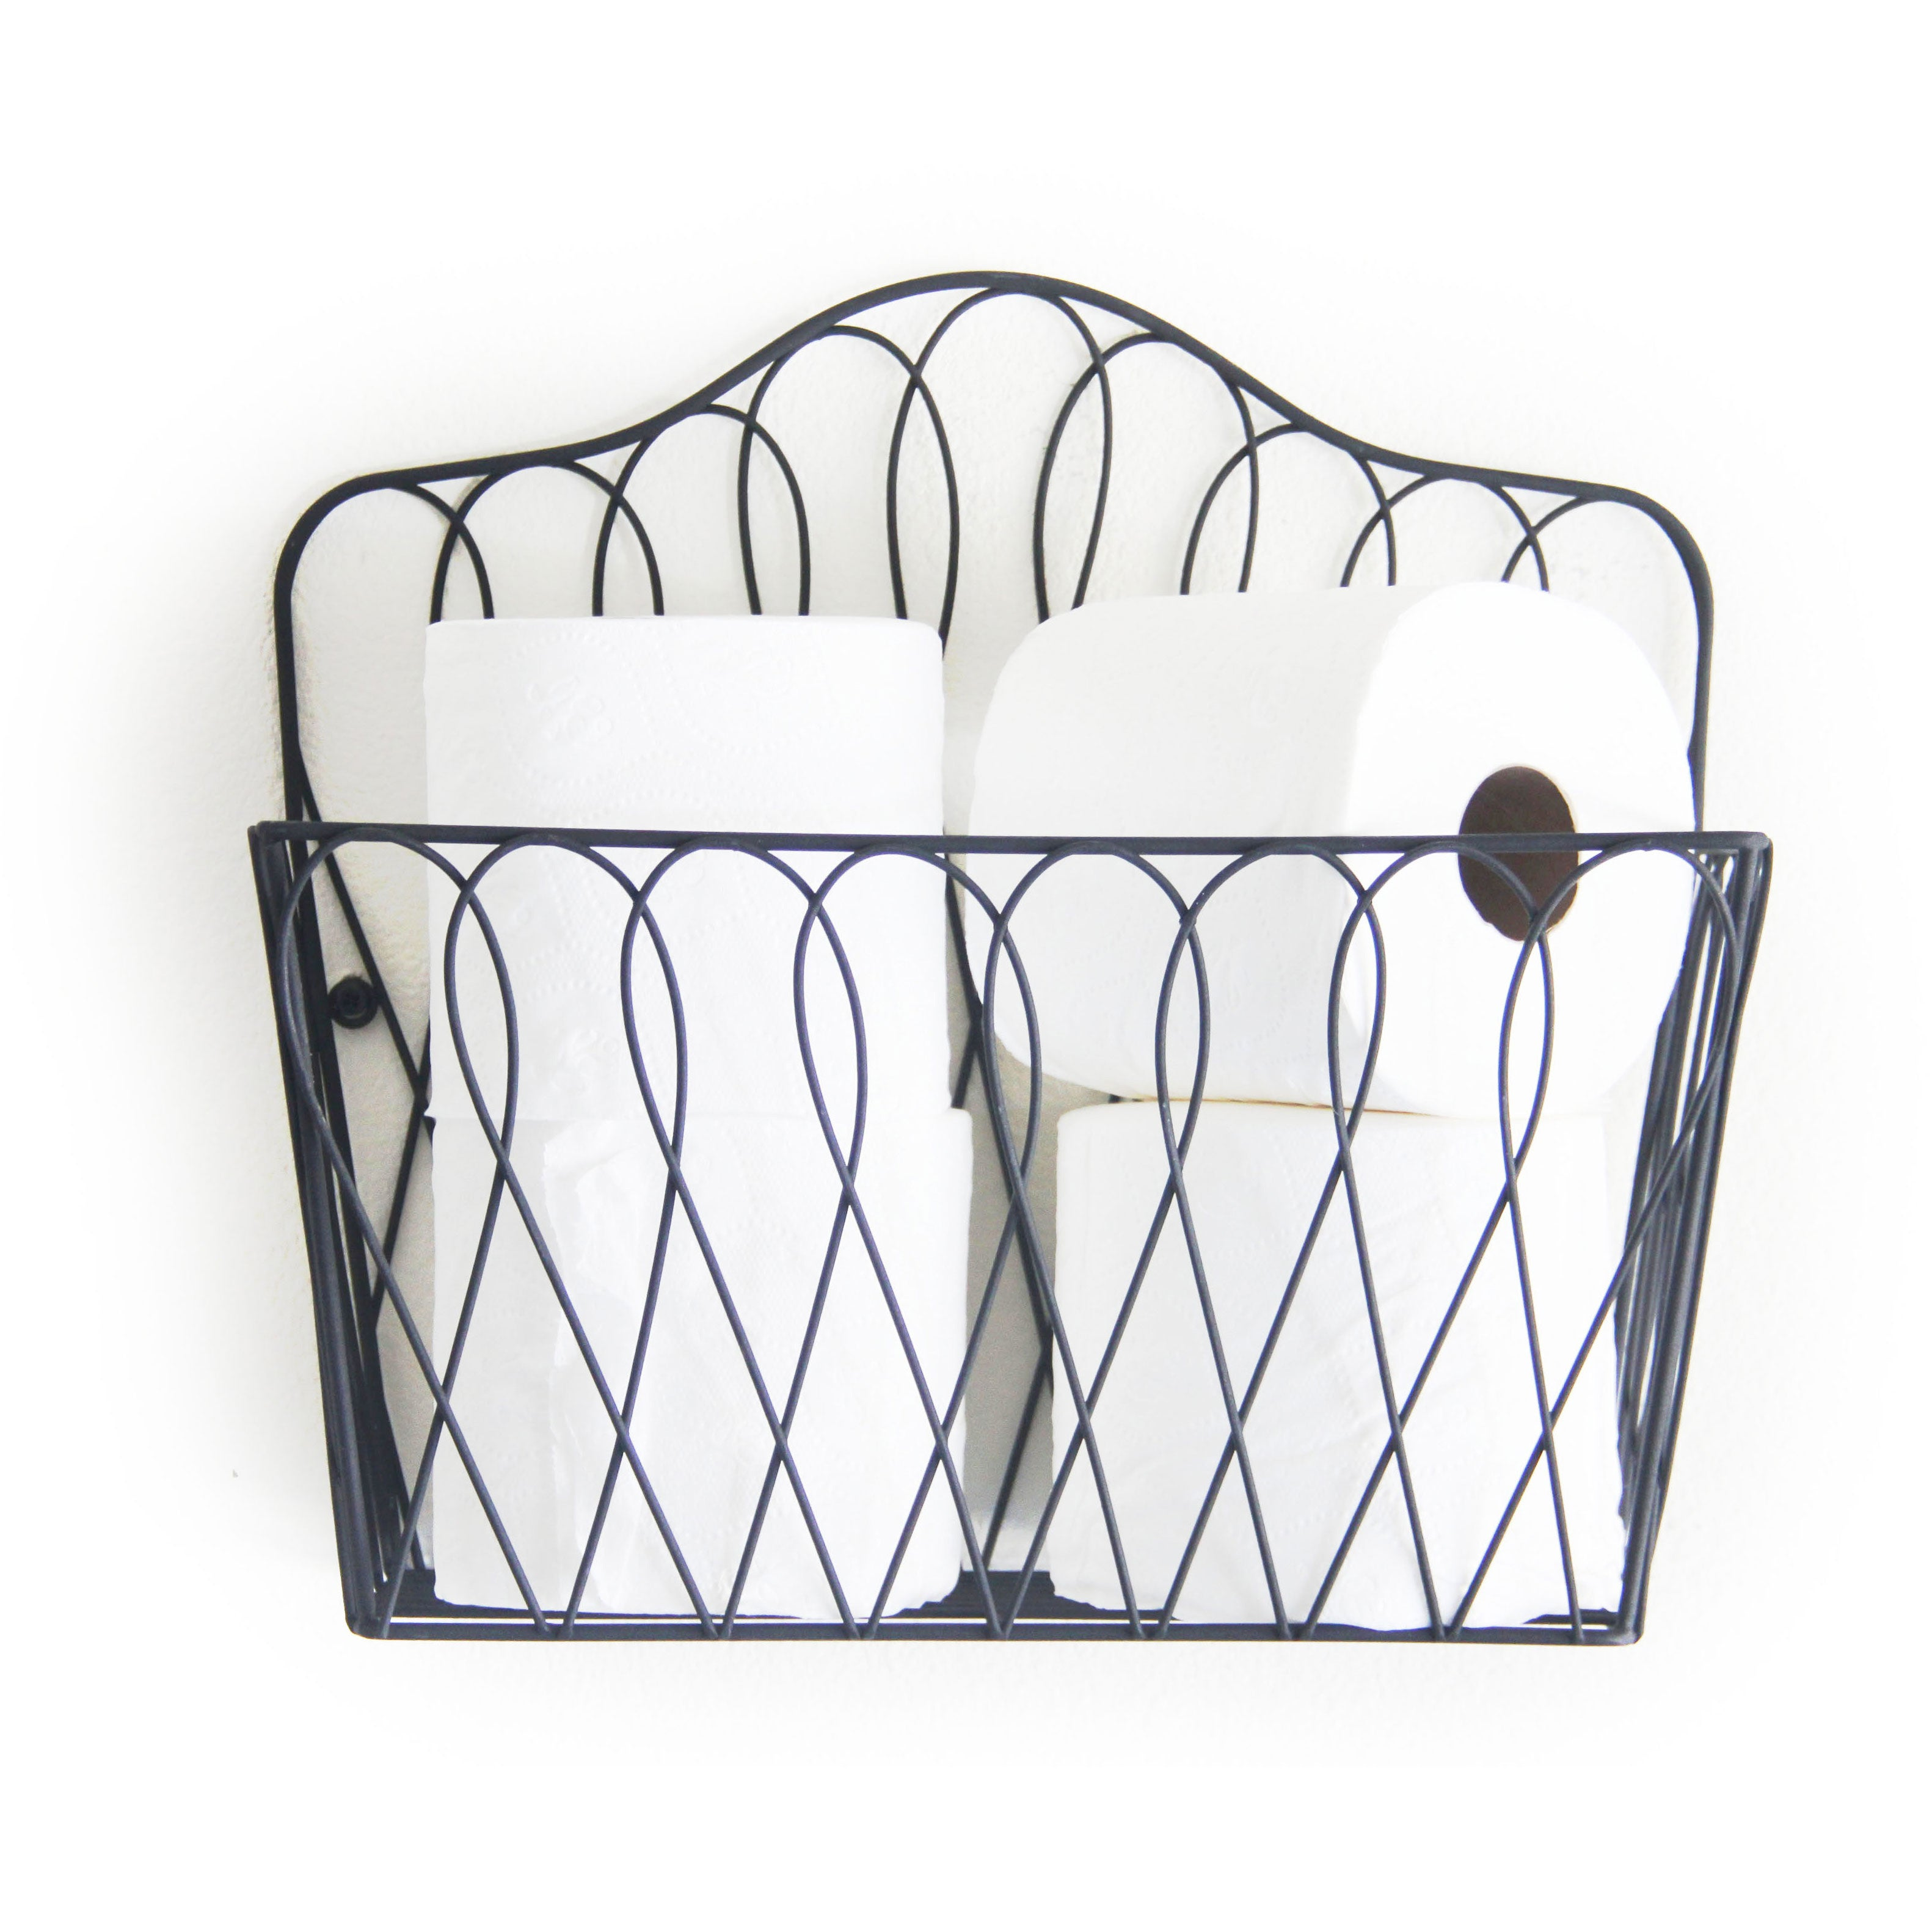 Wall-mounted Magazine Rack Fruit Basket - Free Shipping On Orders Over $45  - Overstock.com - 16585177